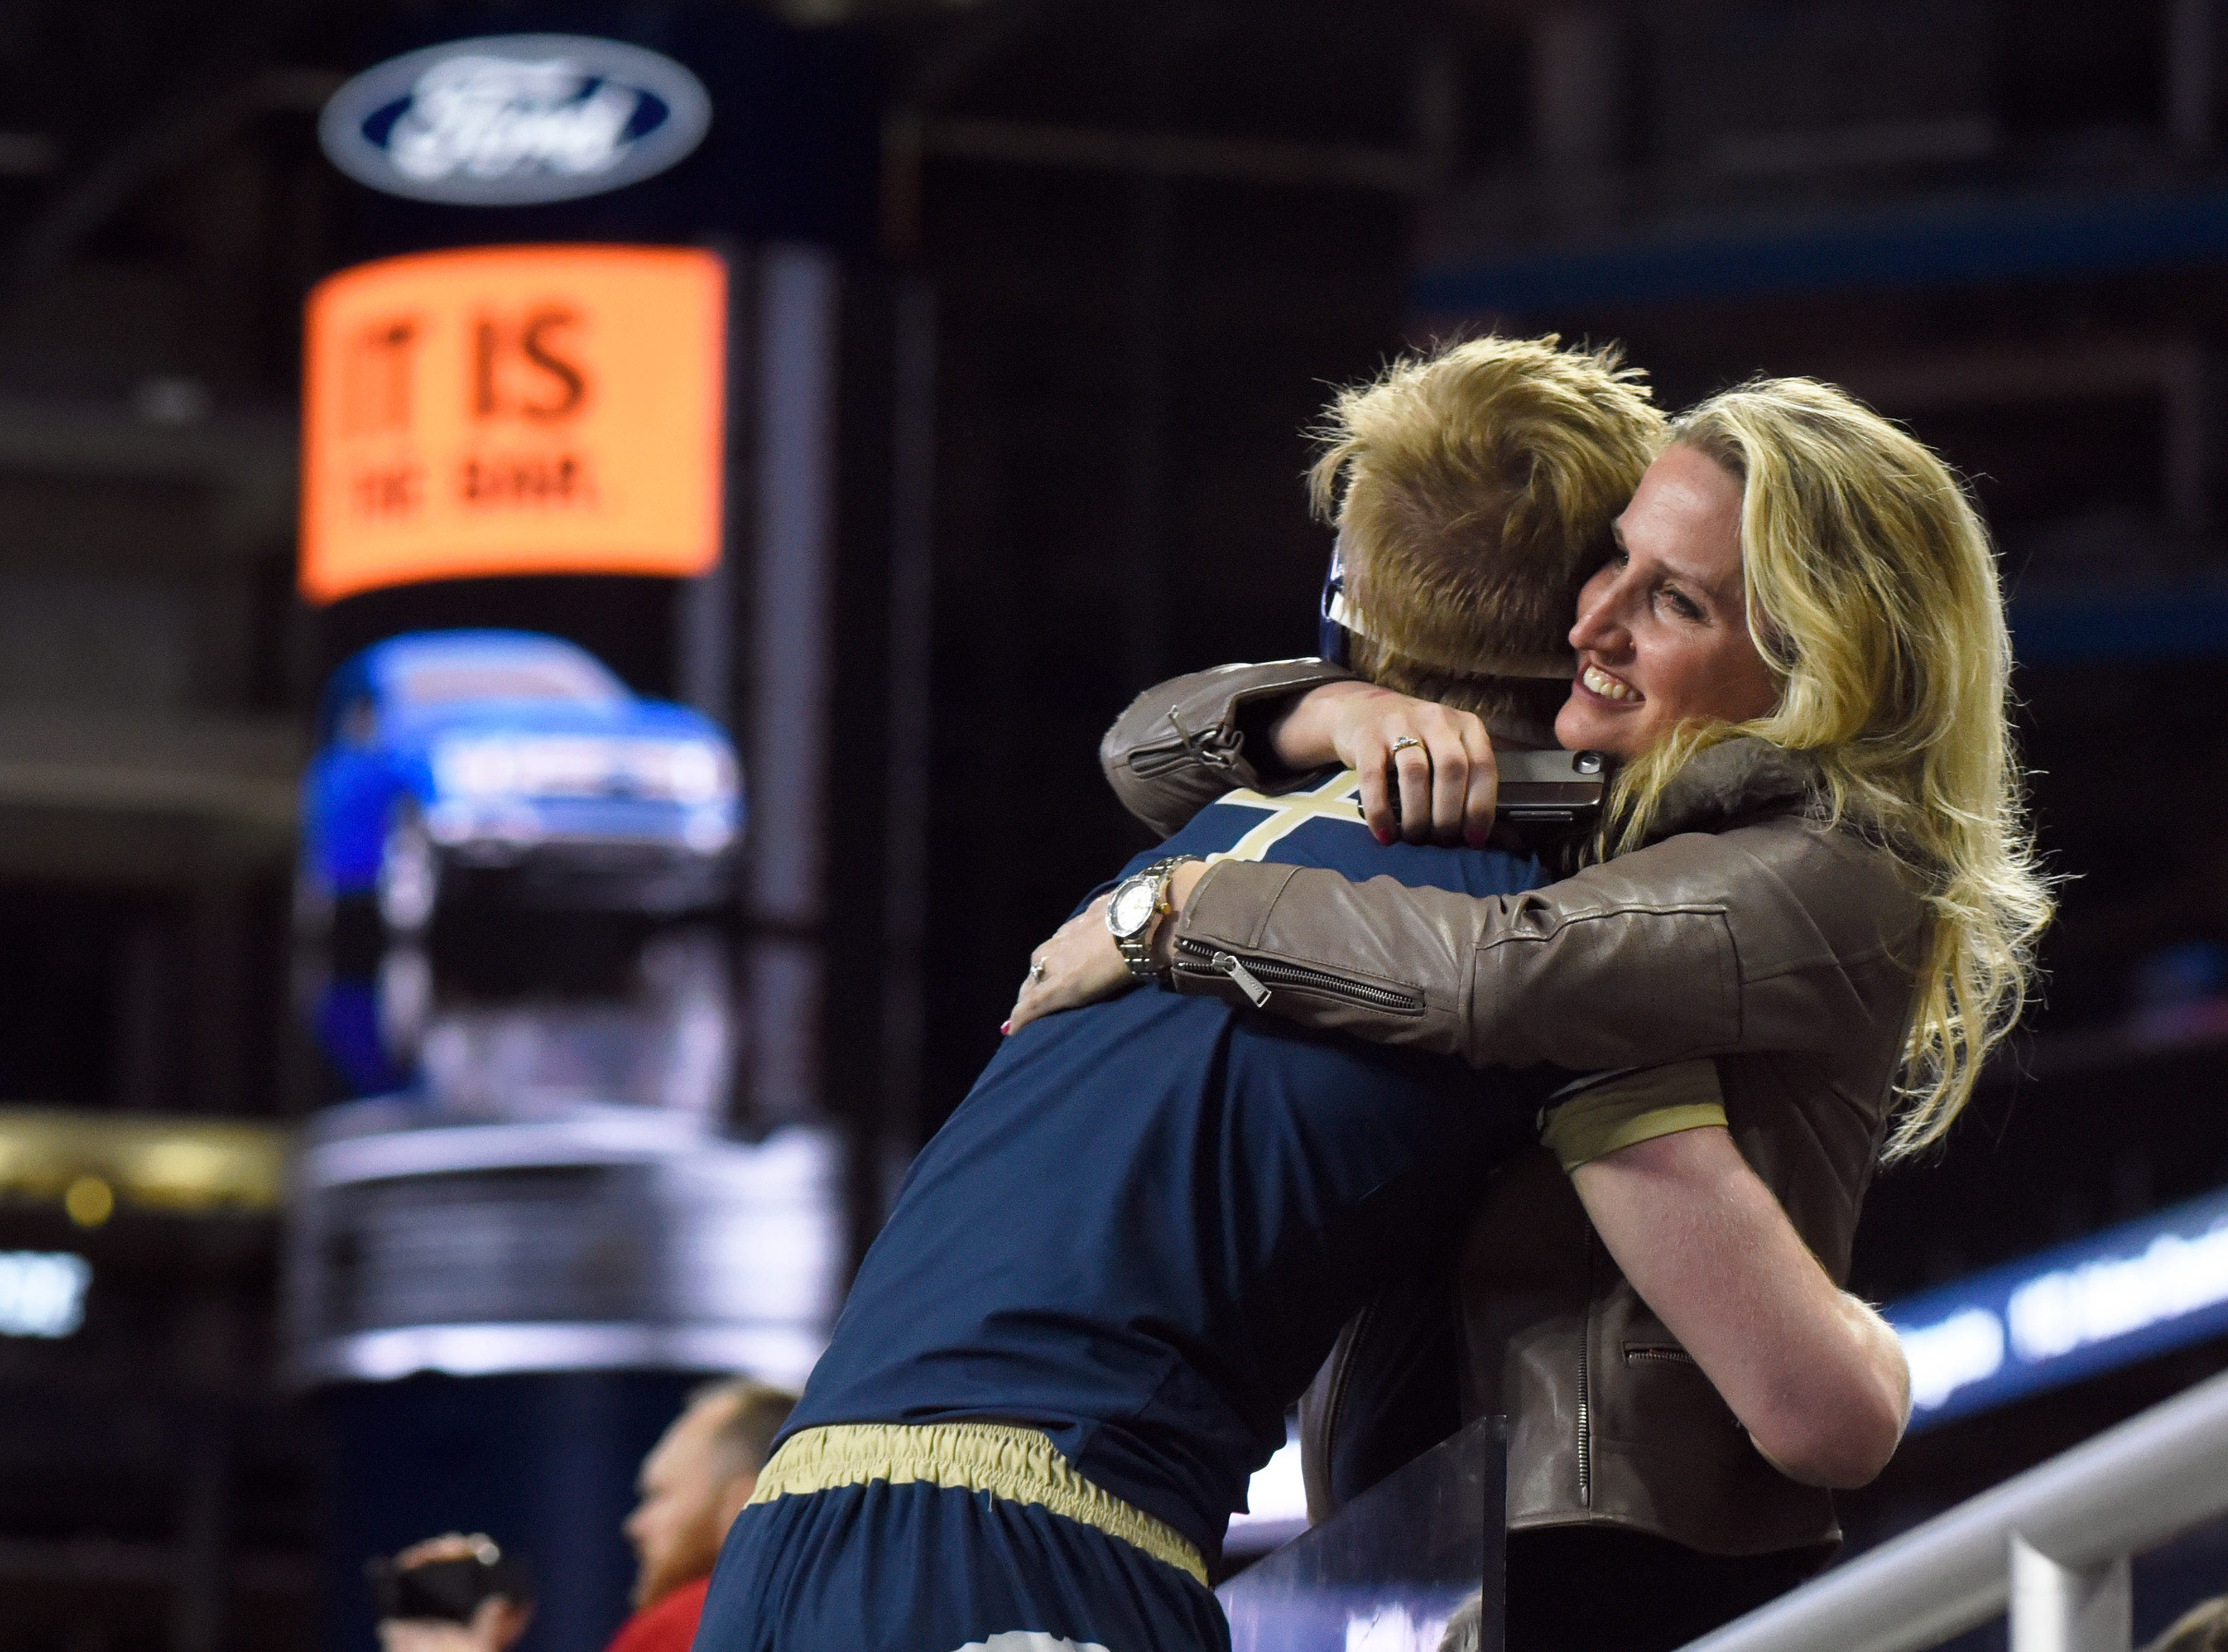 Traverse City St. Francis wrestler Brennan Nickodemus, left, is hugged by his mother, Carla Nickodemus, after Brennan won a Division 4 160-pound consolation match over Nickolas Phillips of Manchester.